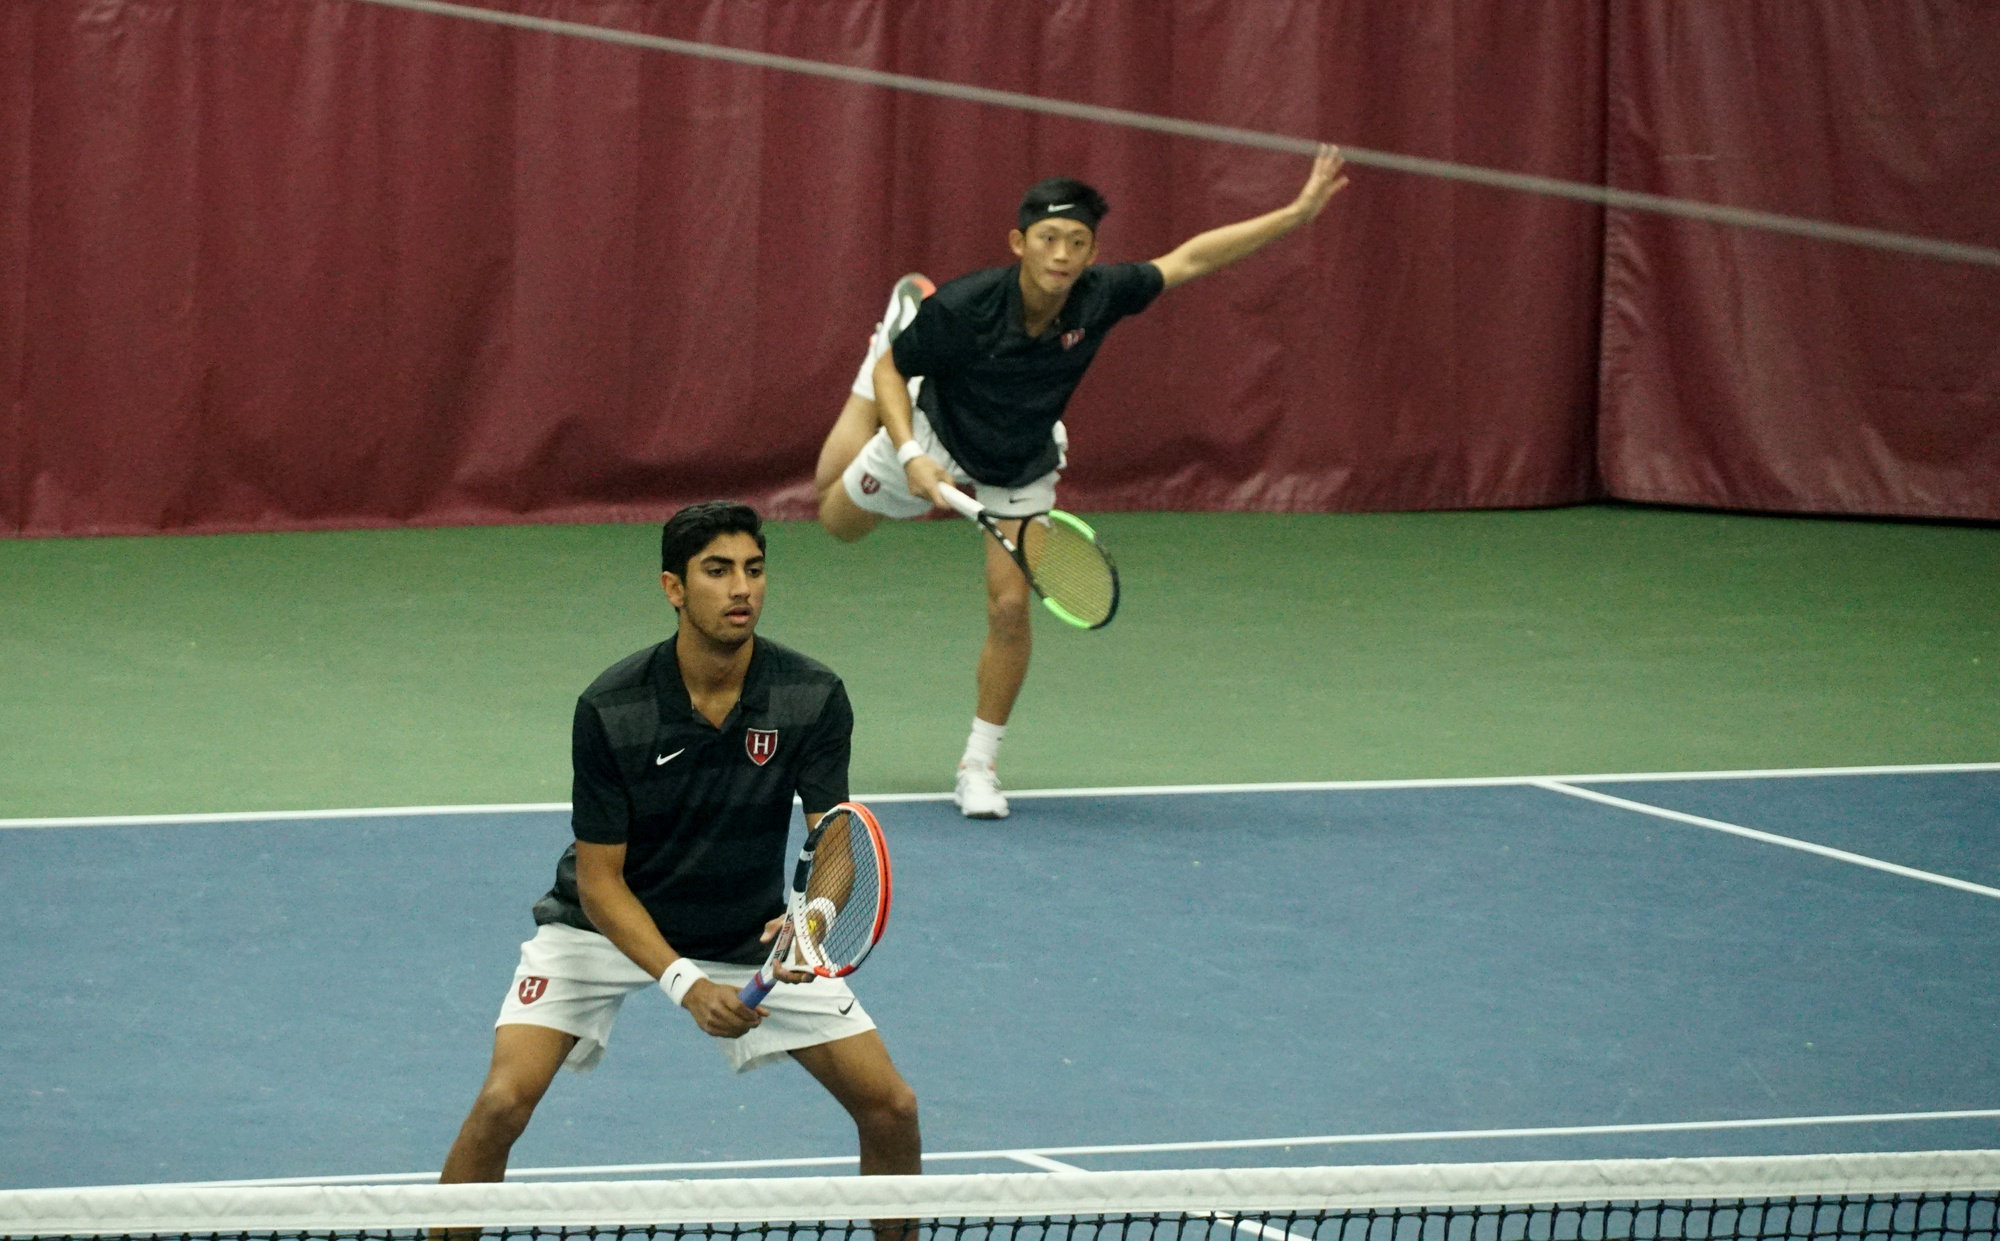 Freshman Ronan Jachuck (front) and sophomore Brian Shi helped Harvard men's tennis sweep Rice in February to move to 5-0. The underclassmen ensure that the Crimson's future is bright.